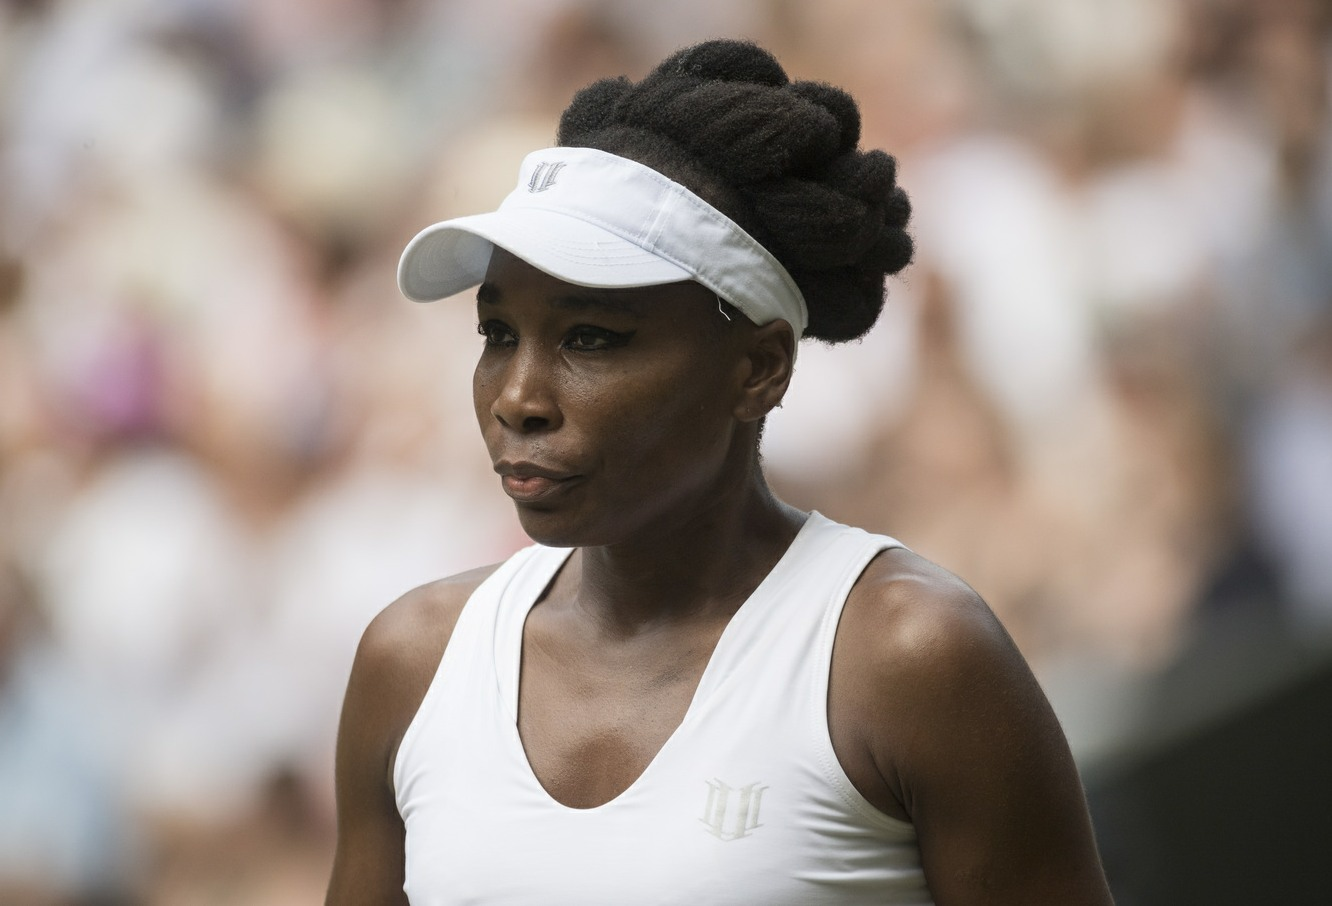 Venus Williams during the Wimbledon Tennis Championships in London